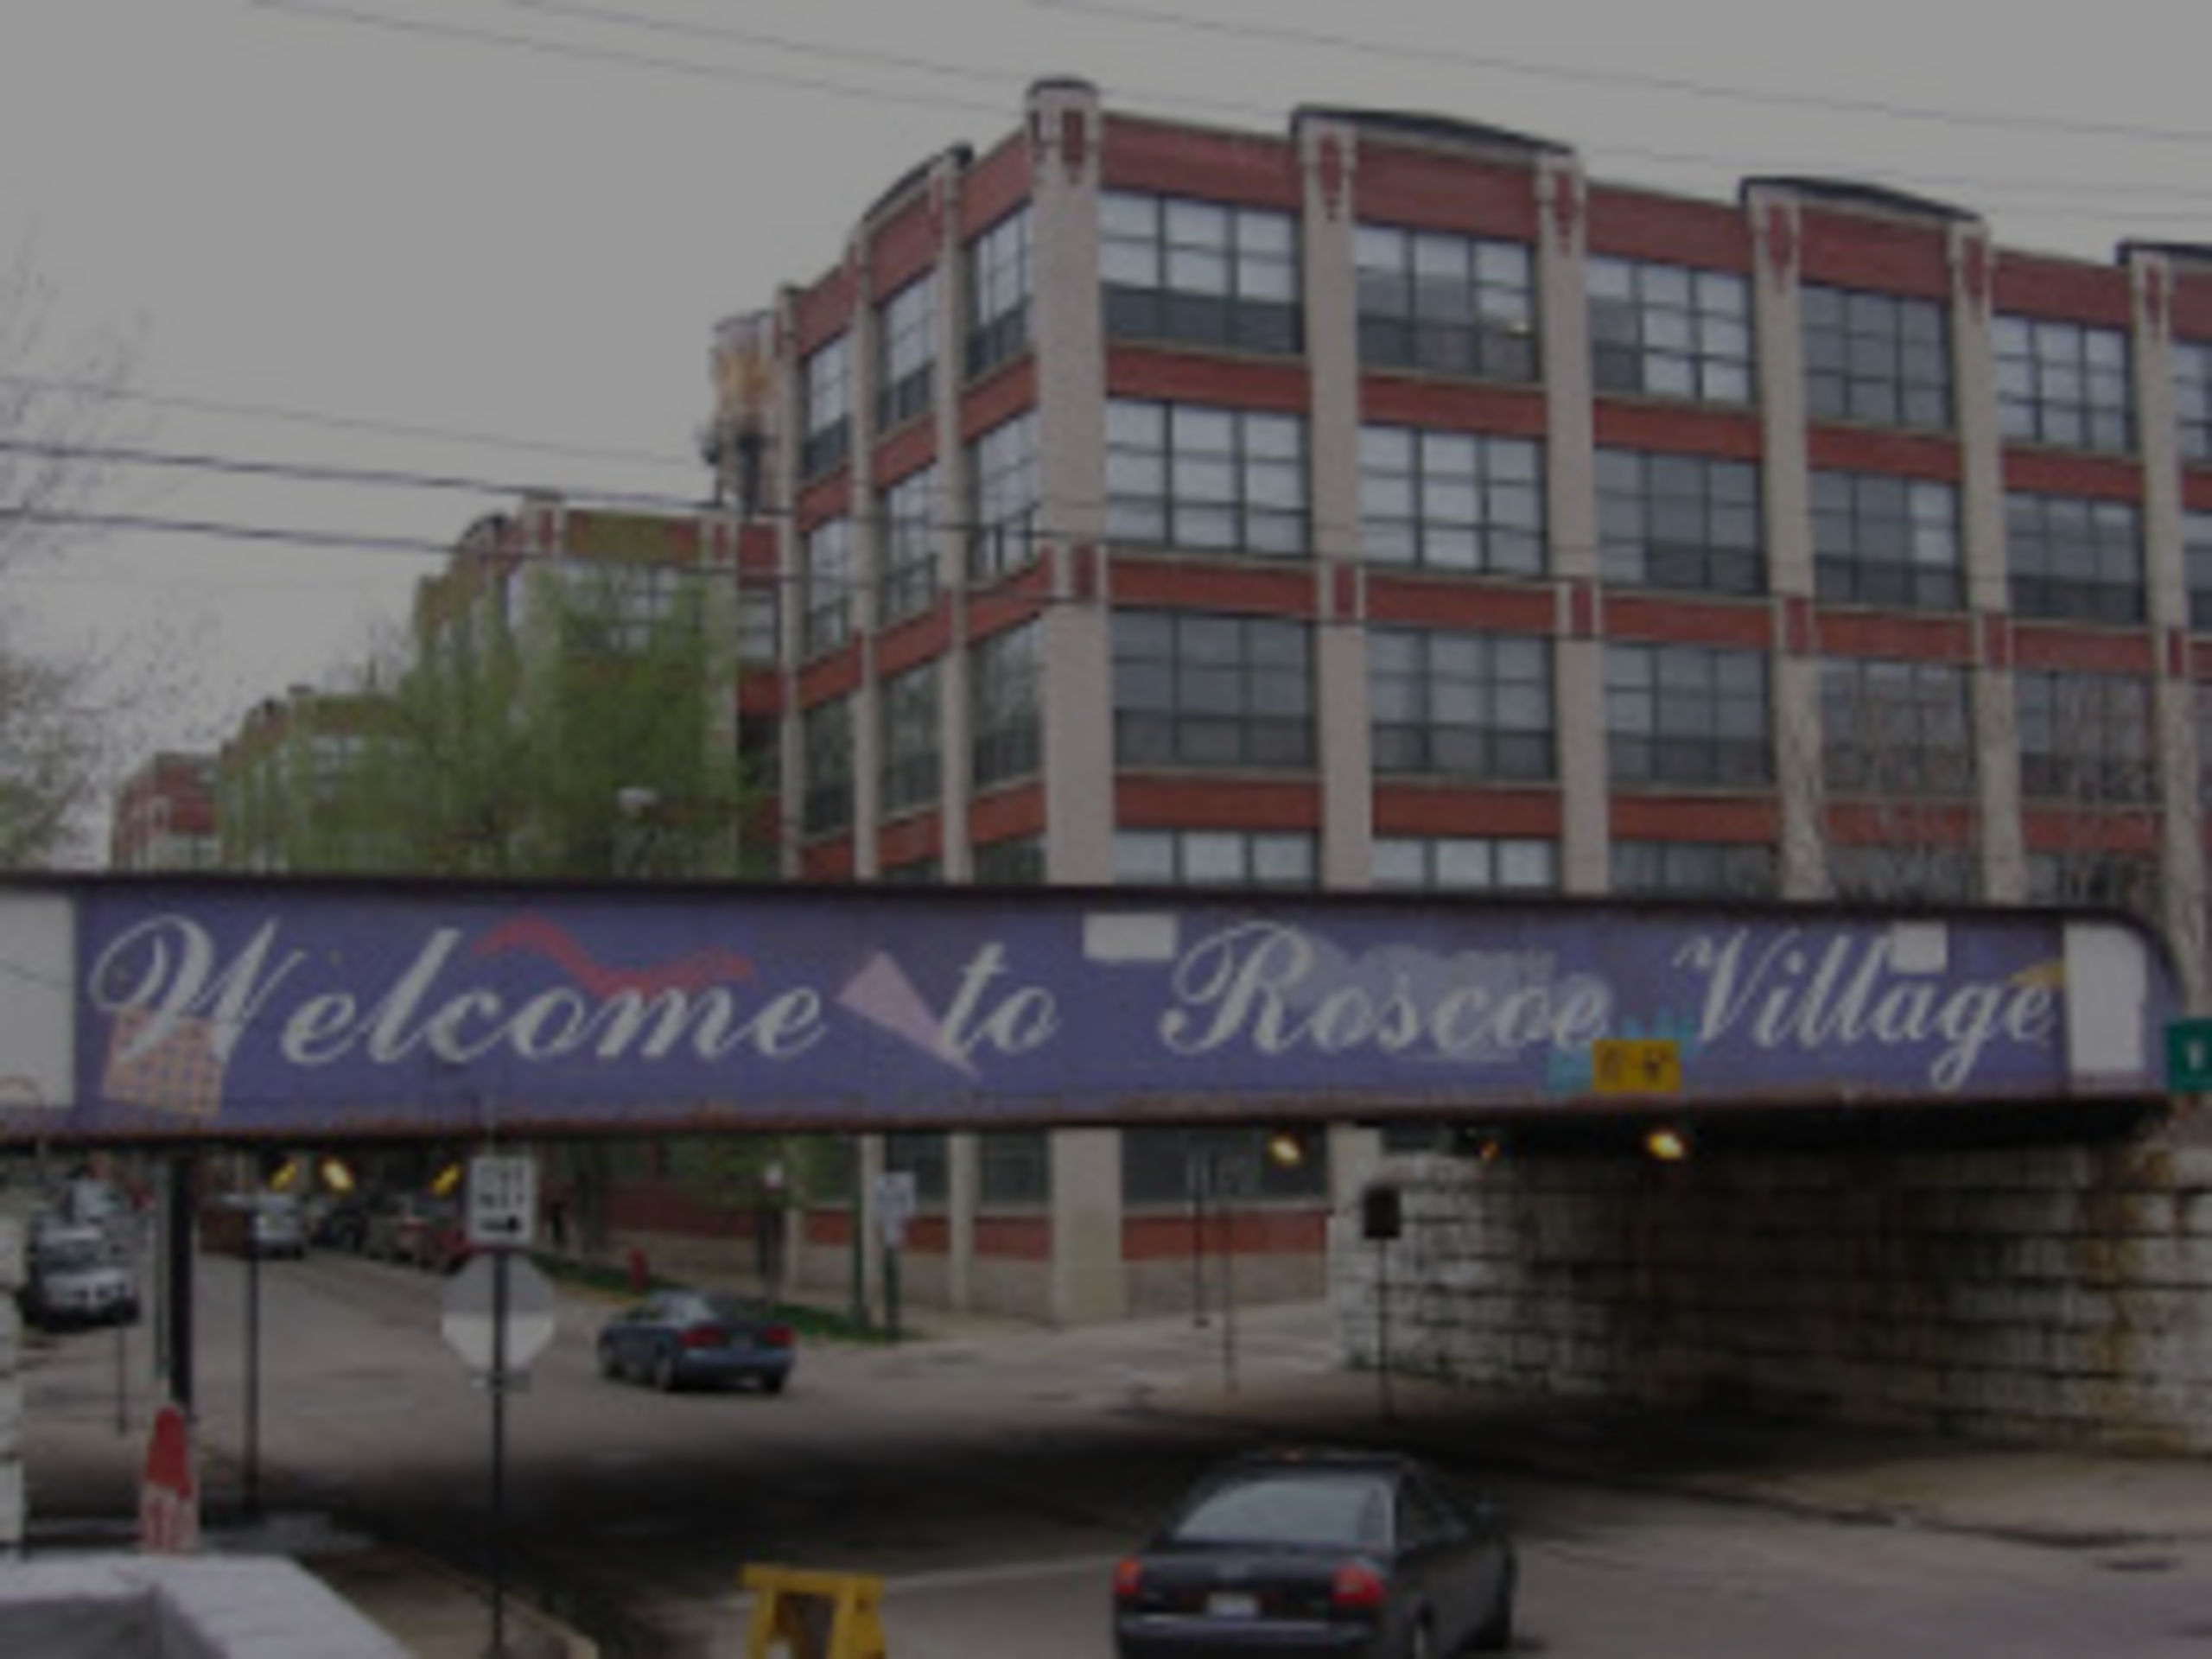 Chicago Neighborhood Spotlight: Roscoe Village